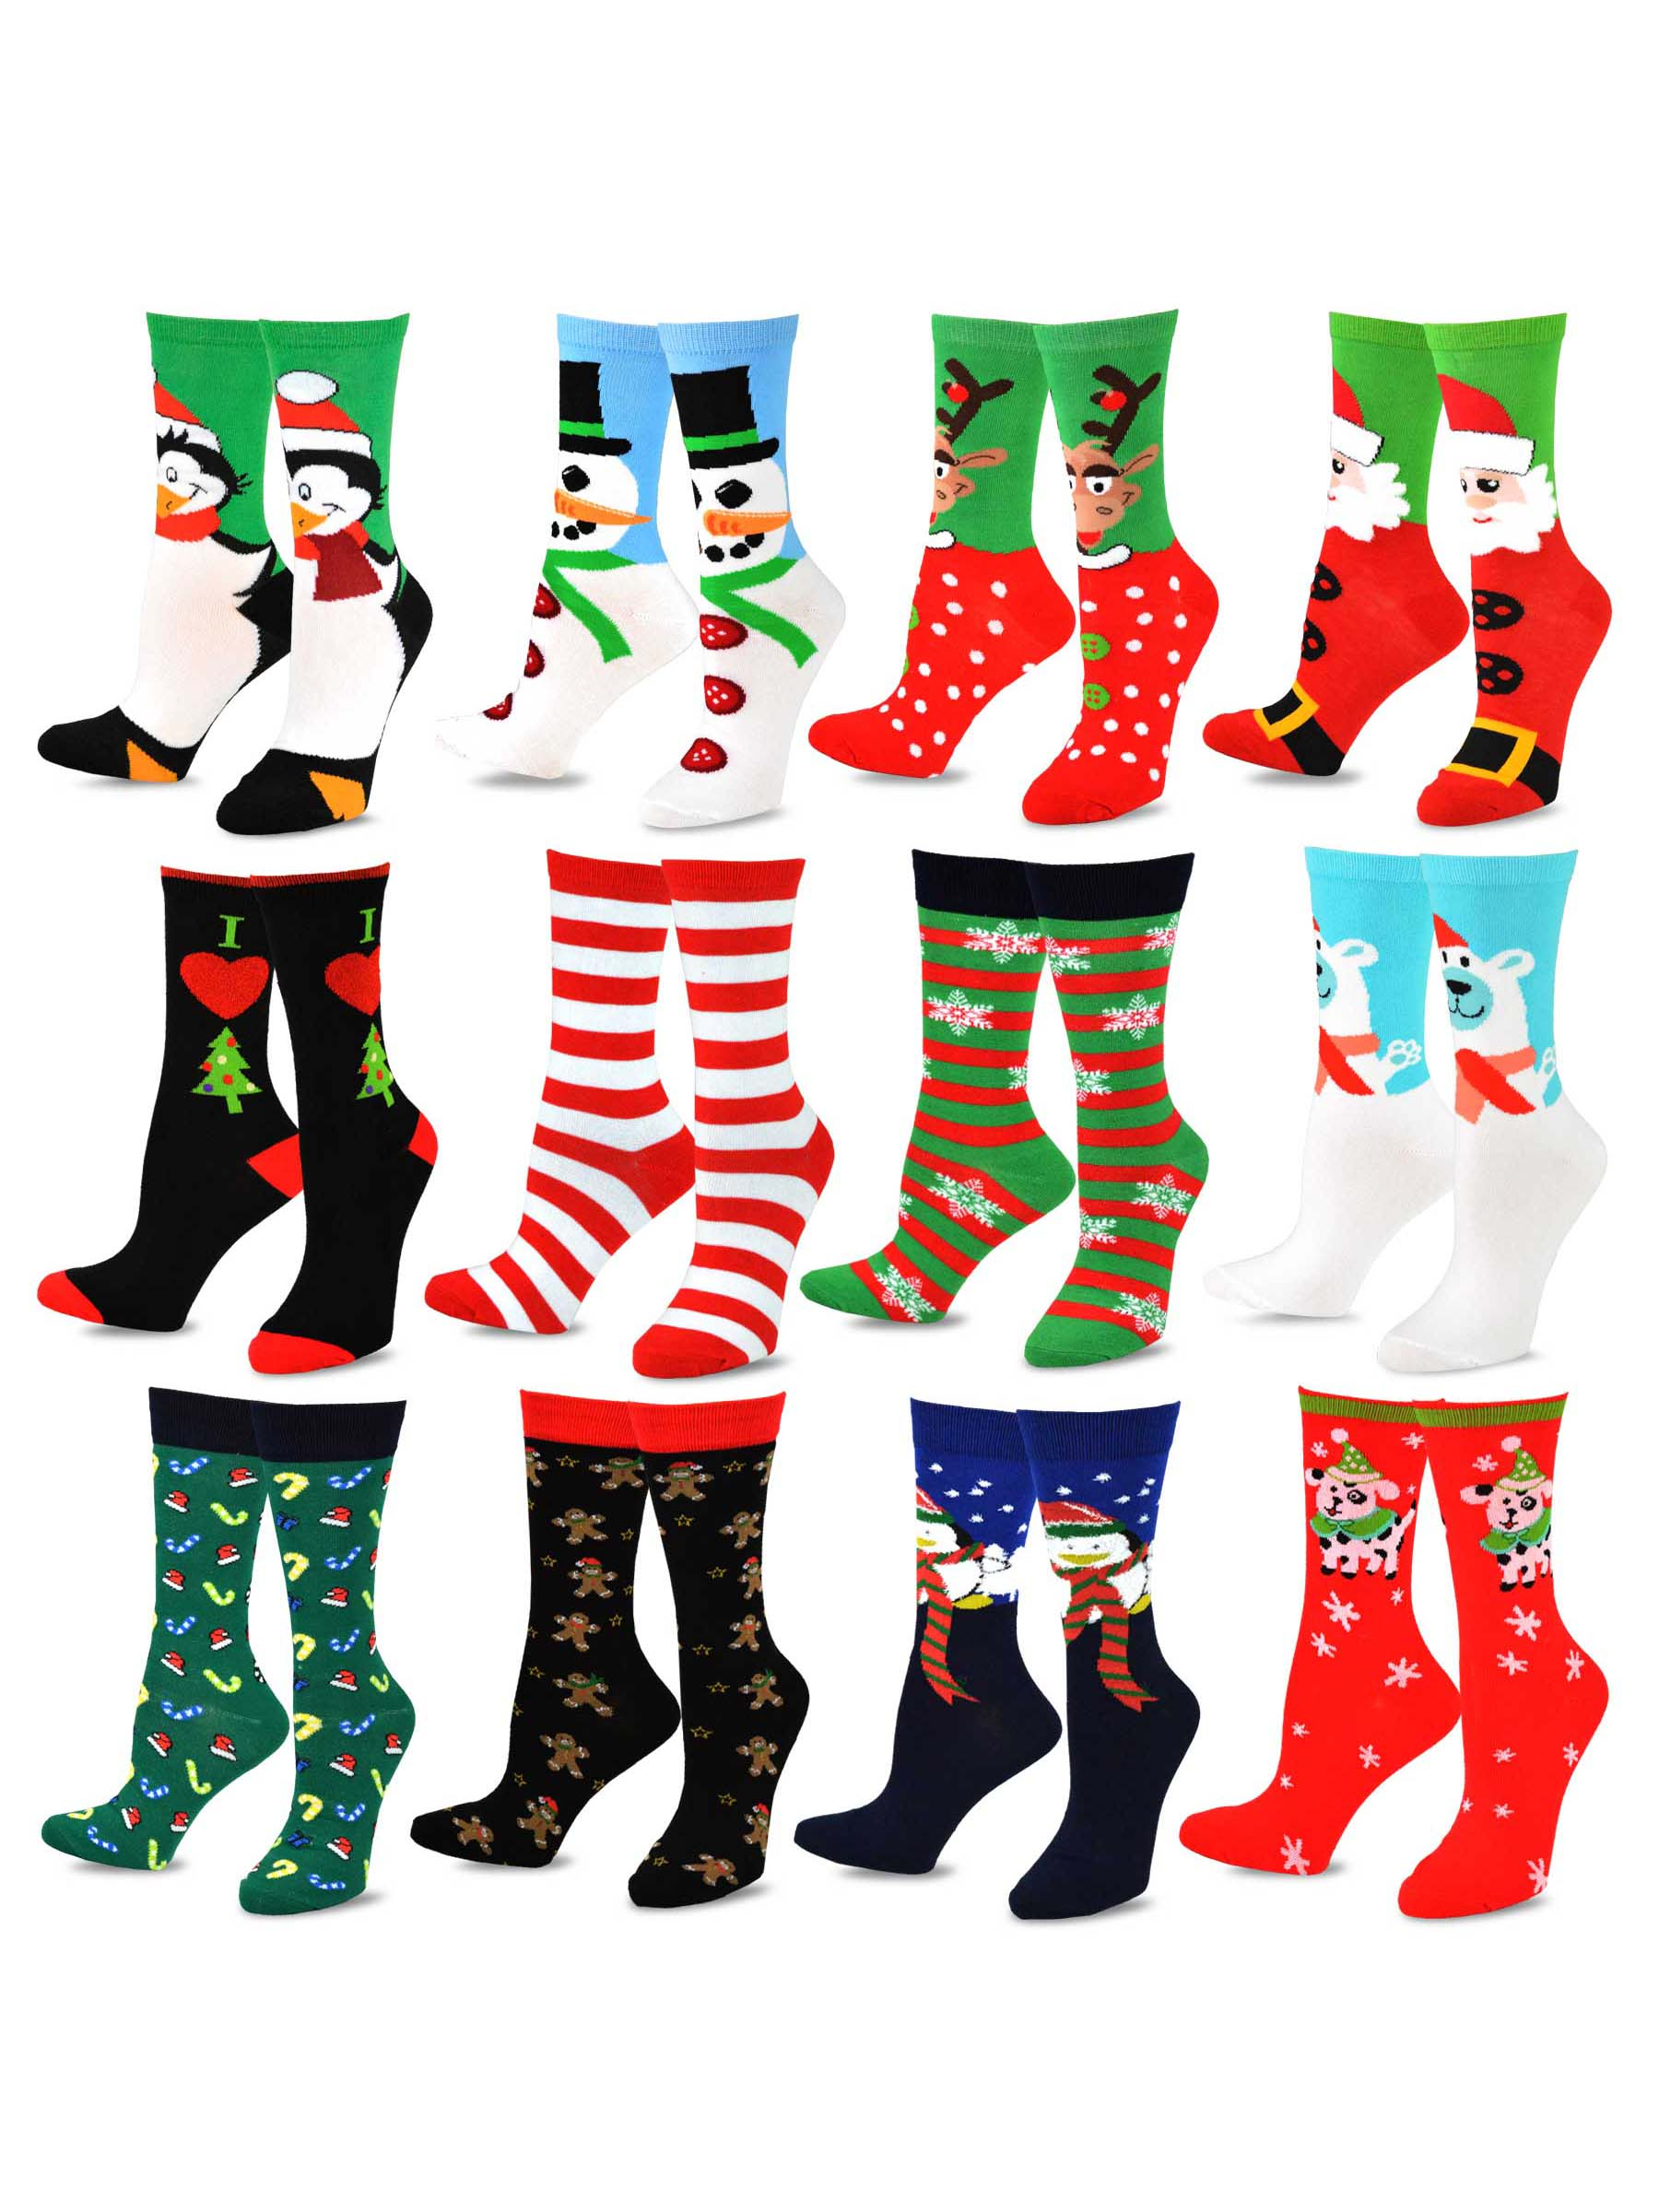 Teehee Socks Christmas Holiday 12 Pack Gift For Women With Box